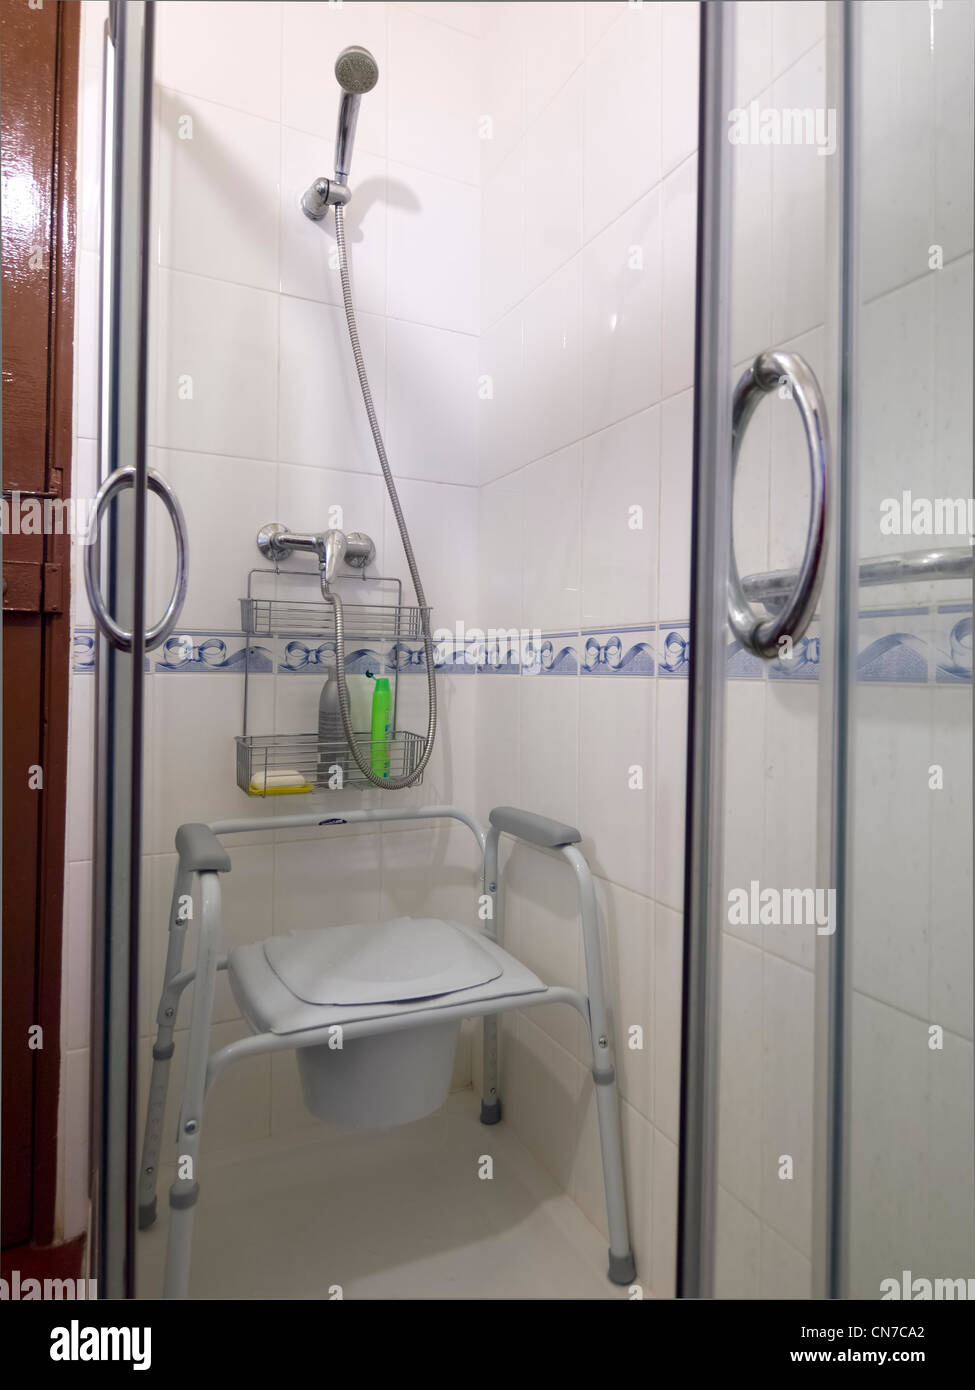 Seat for the handicapped in a shower cubicle Stock Photo: 47491866 ...